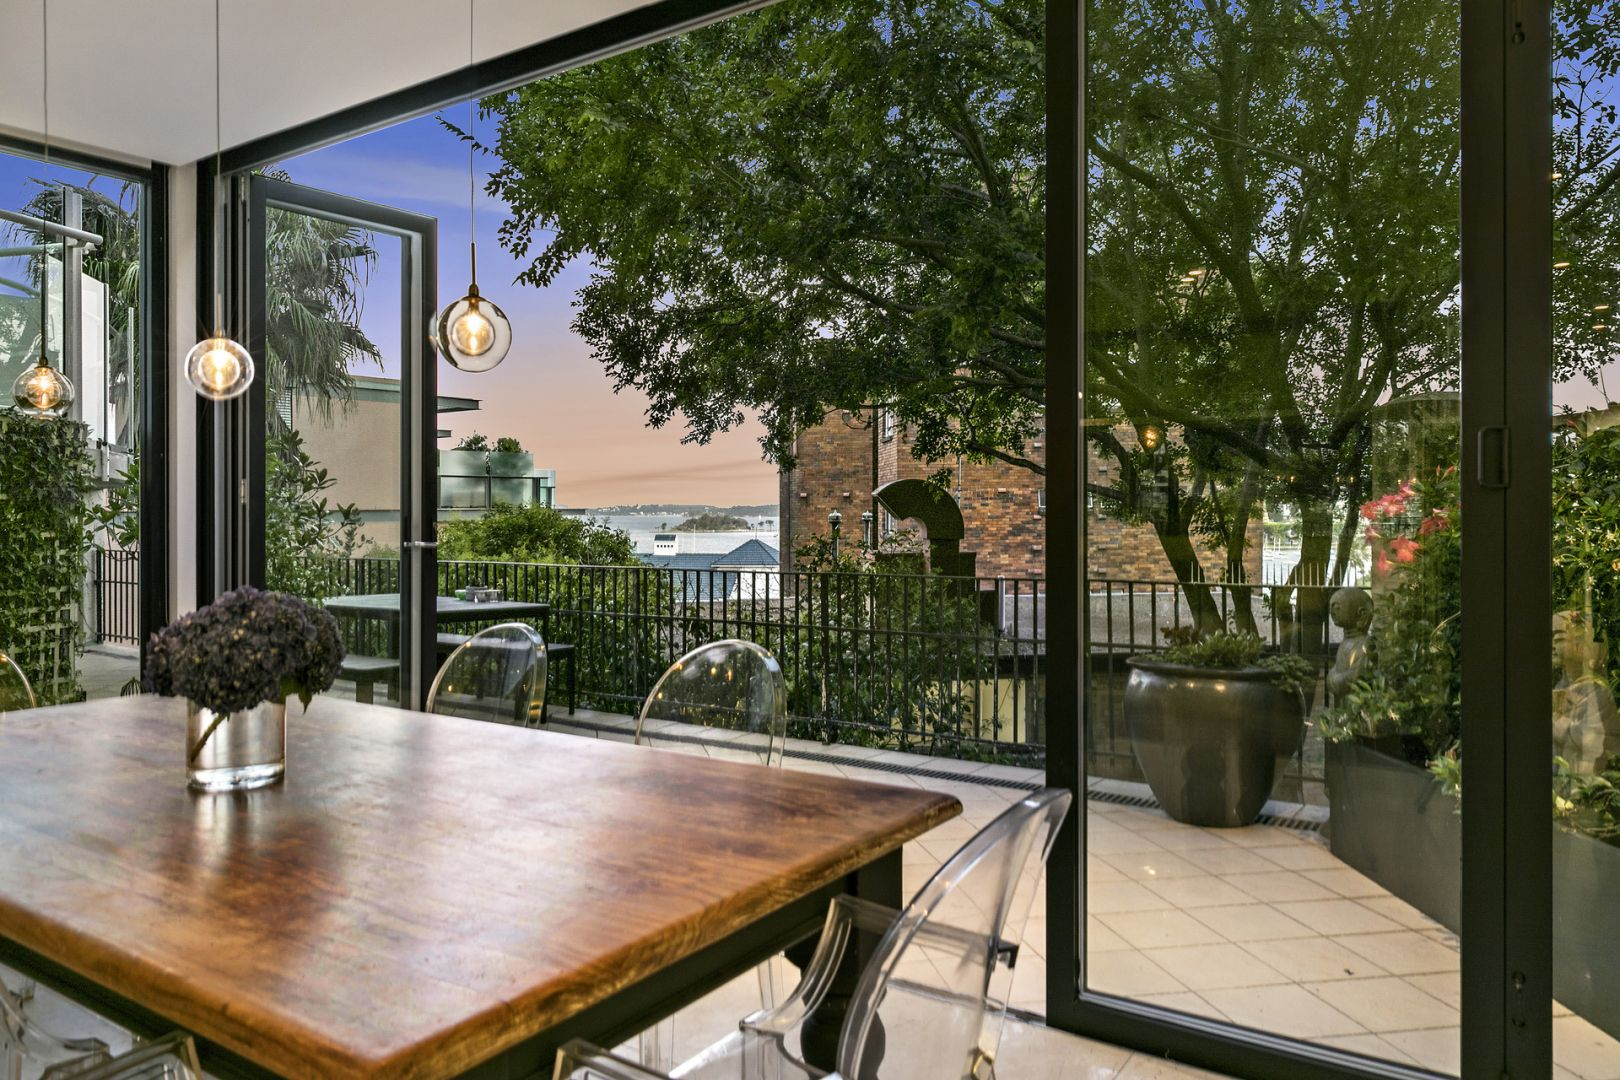 Apartments with large outdoor areas prove popular.